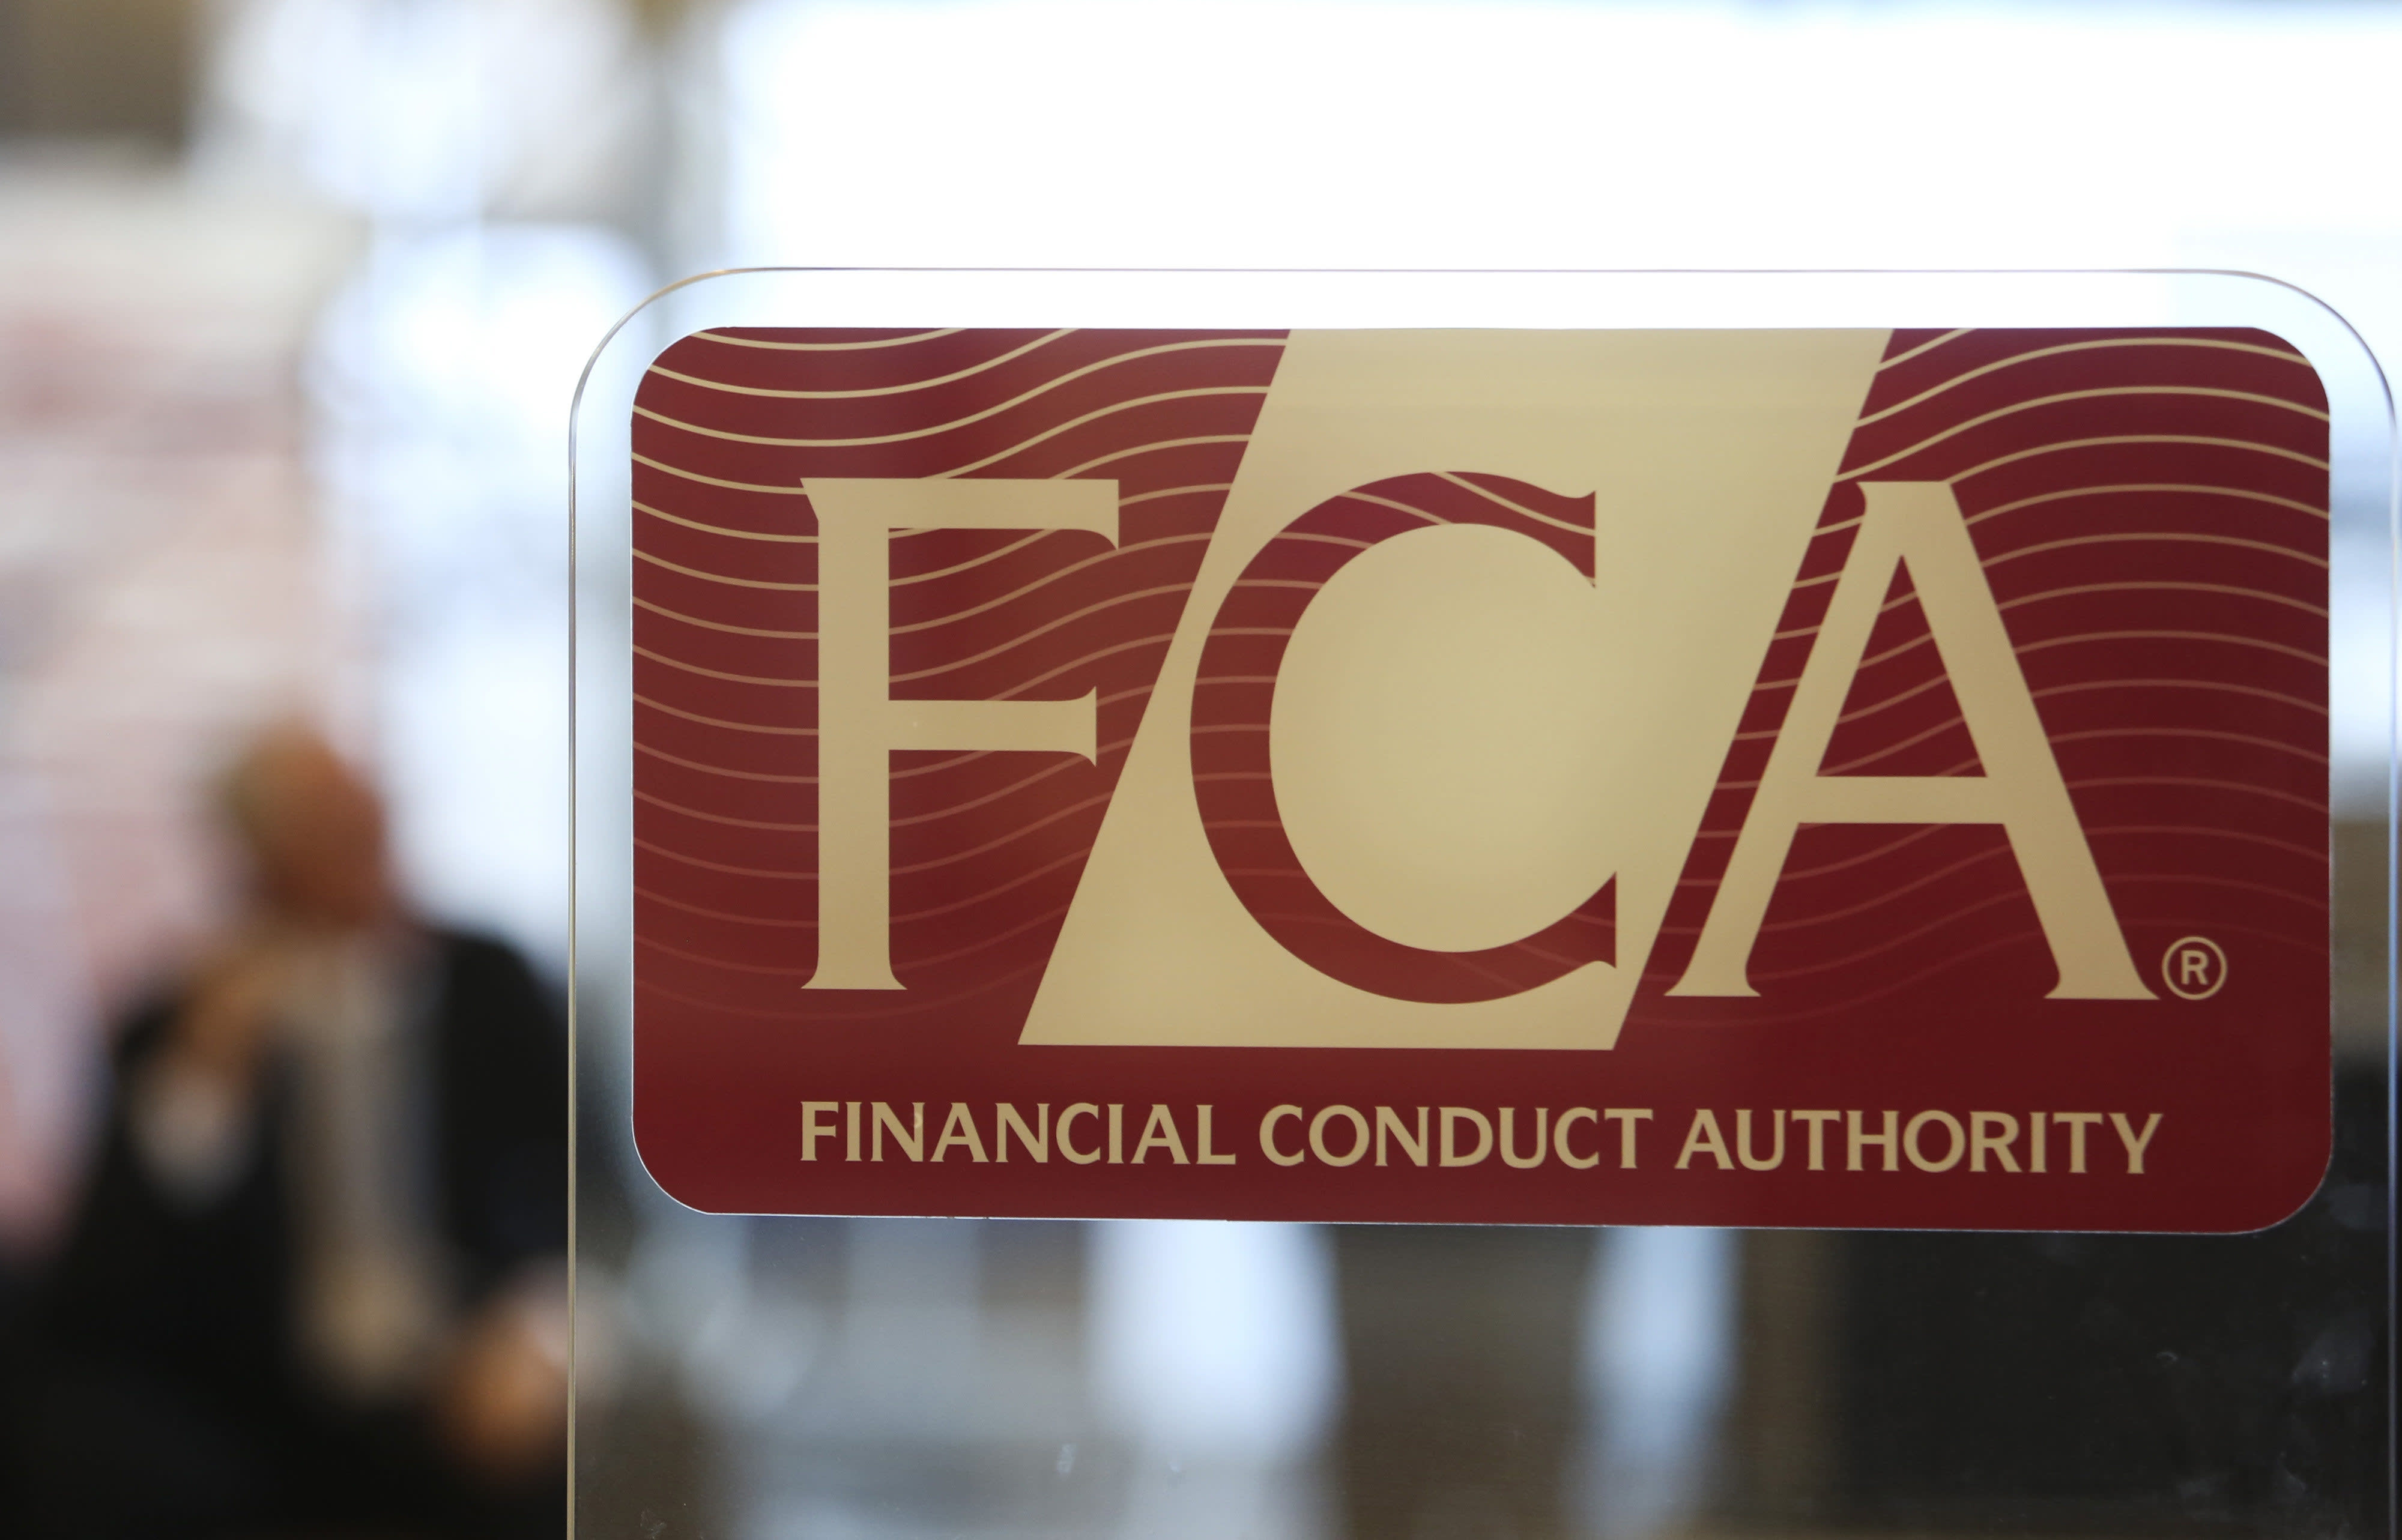 Watchdog chief says Brexit can't 'obstruct' FCA policing